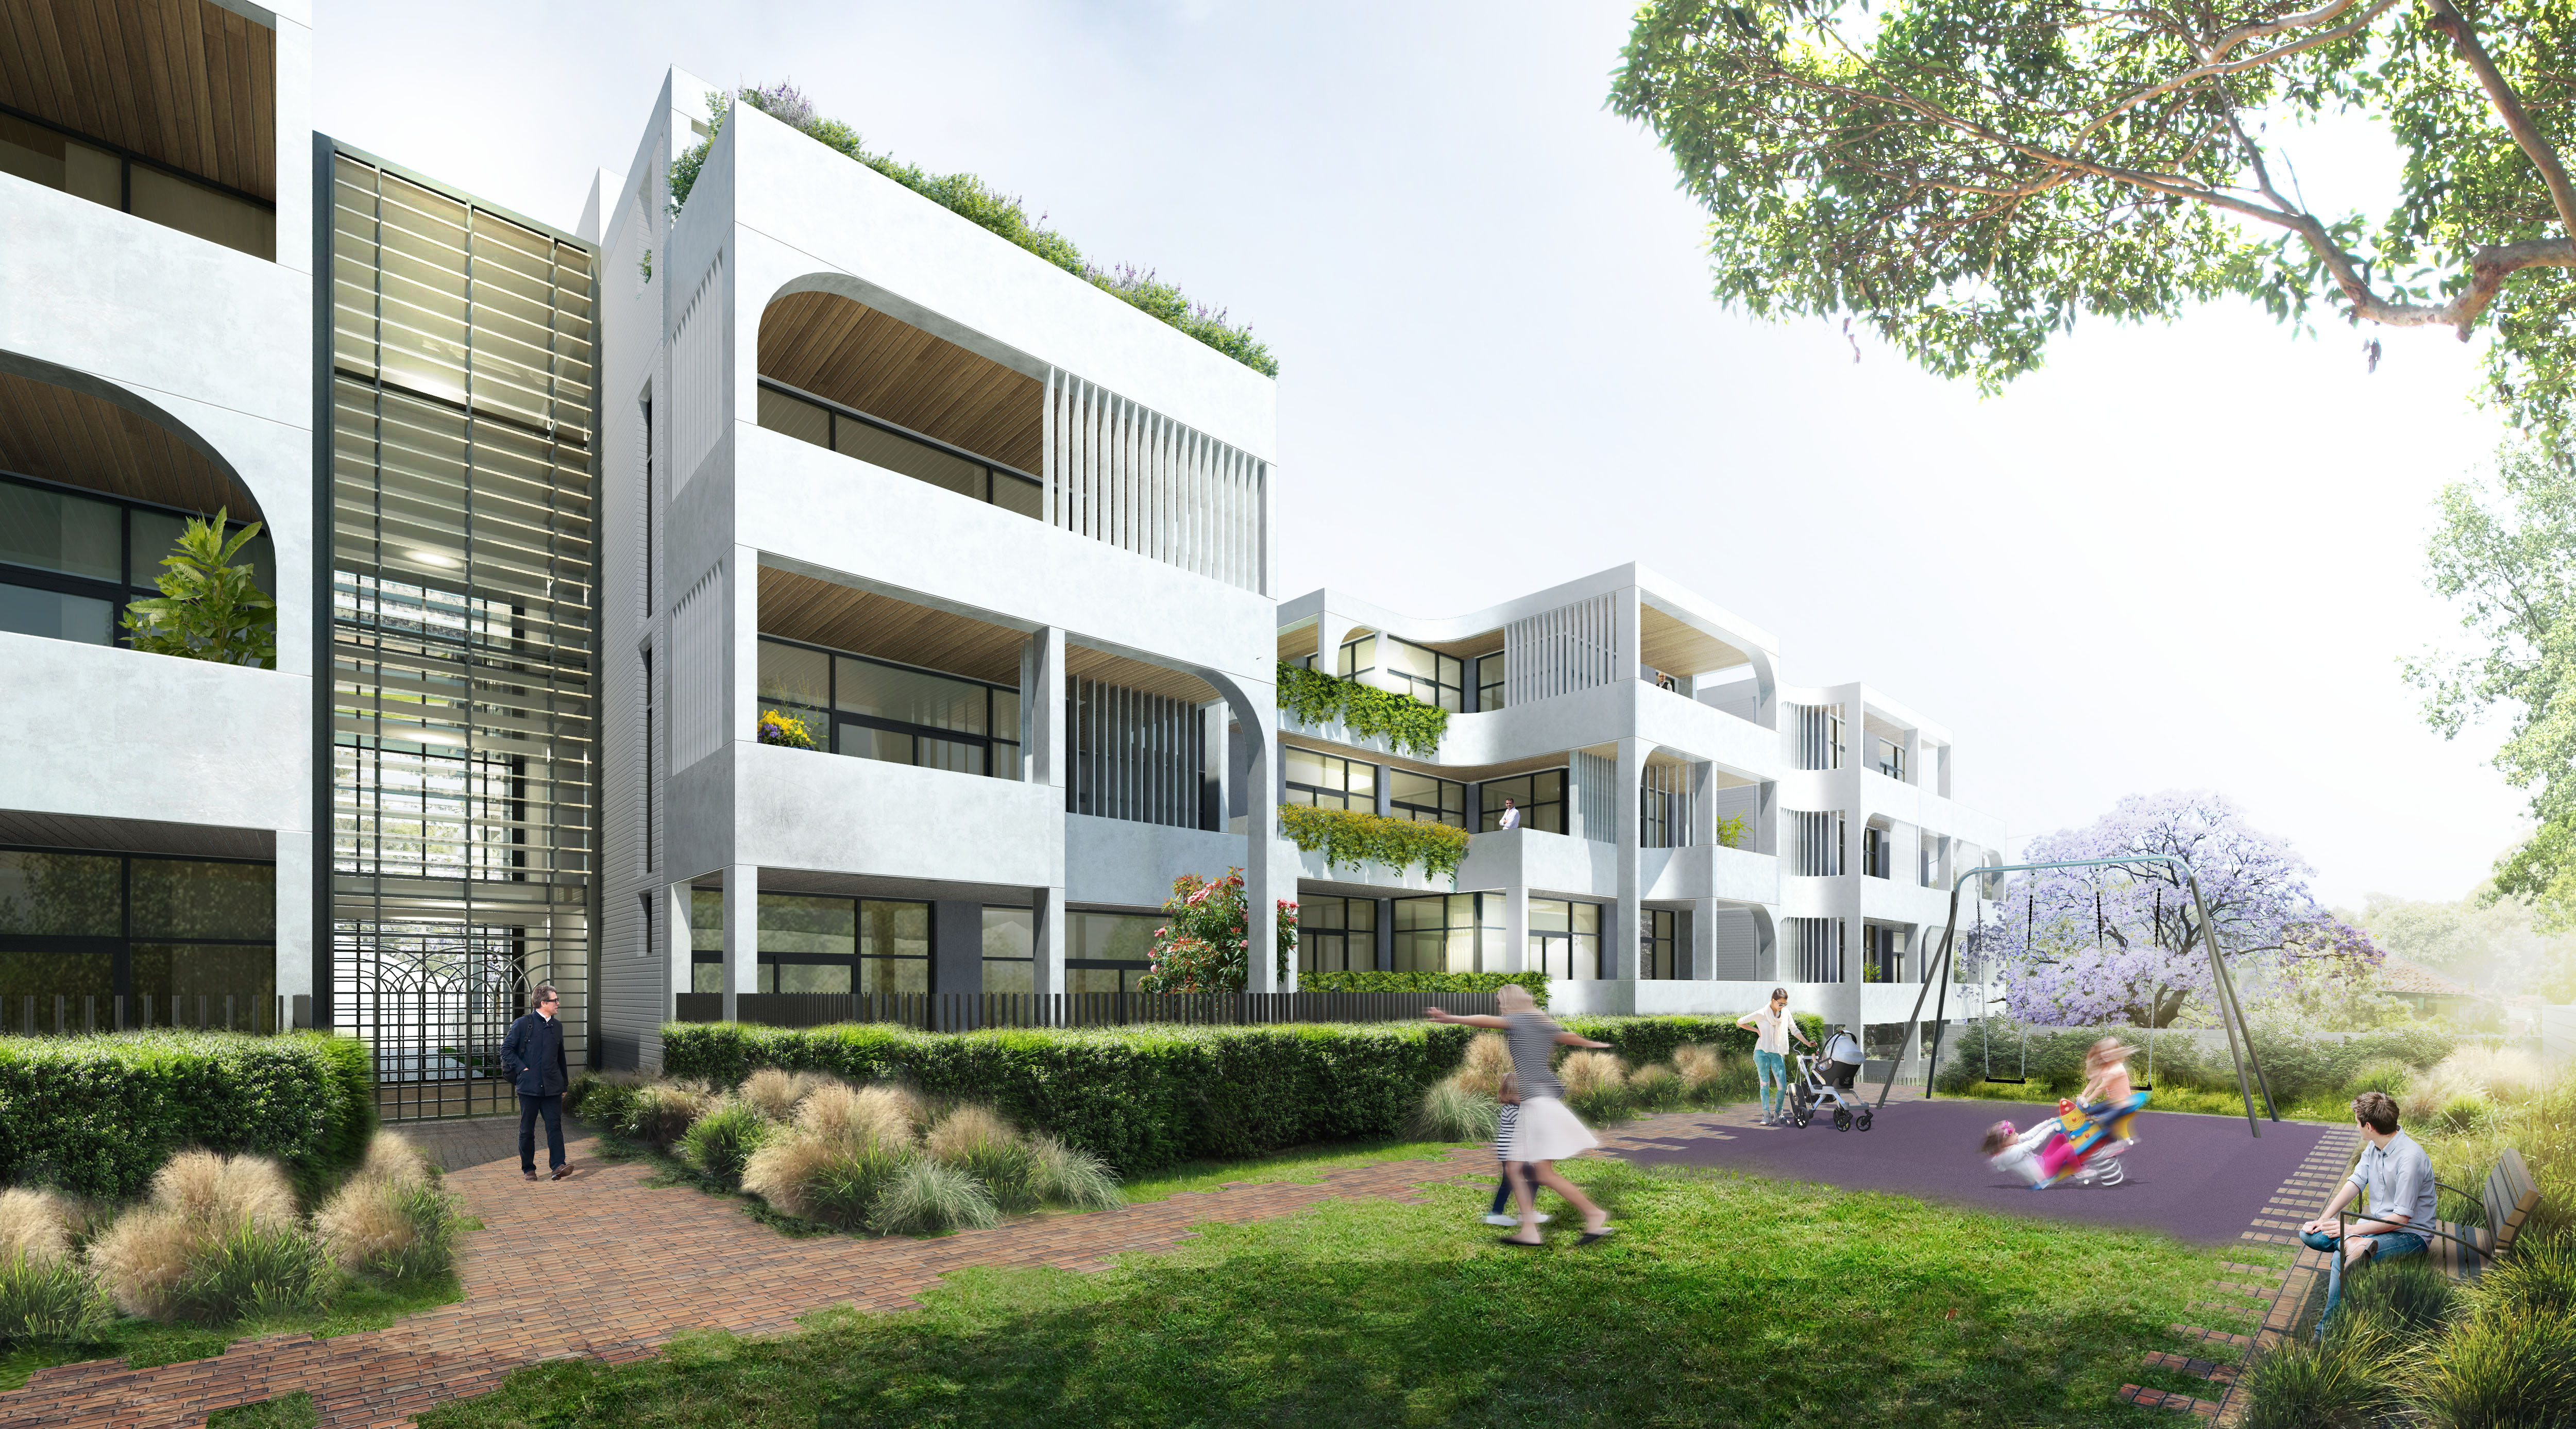 Multi-Residential project in Chatswood, NSW